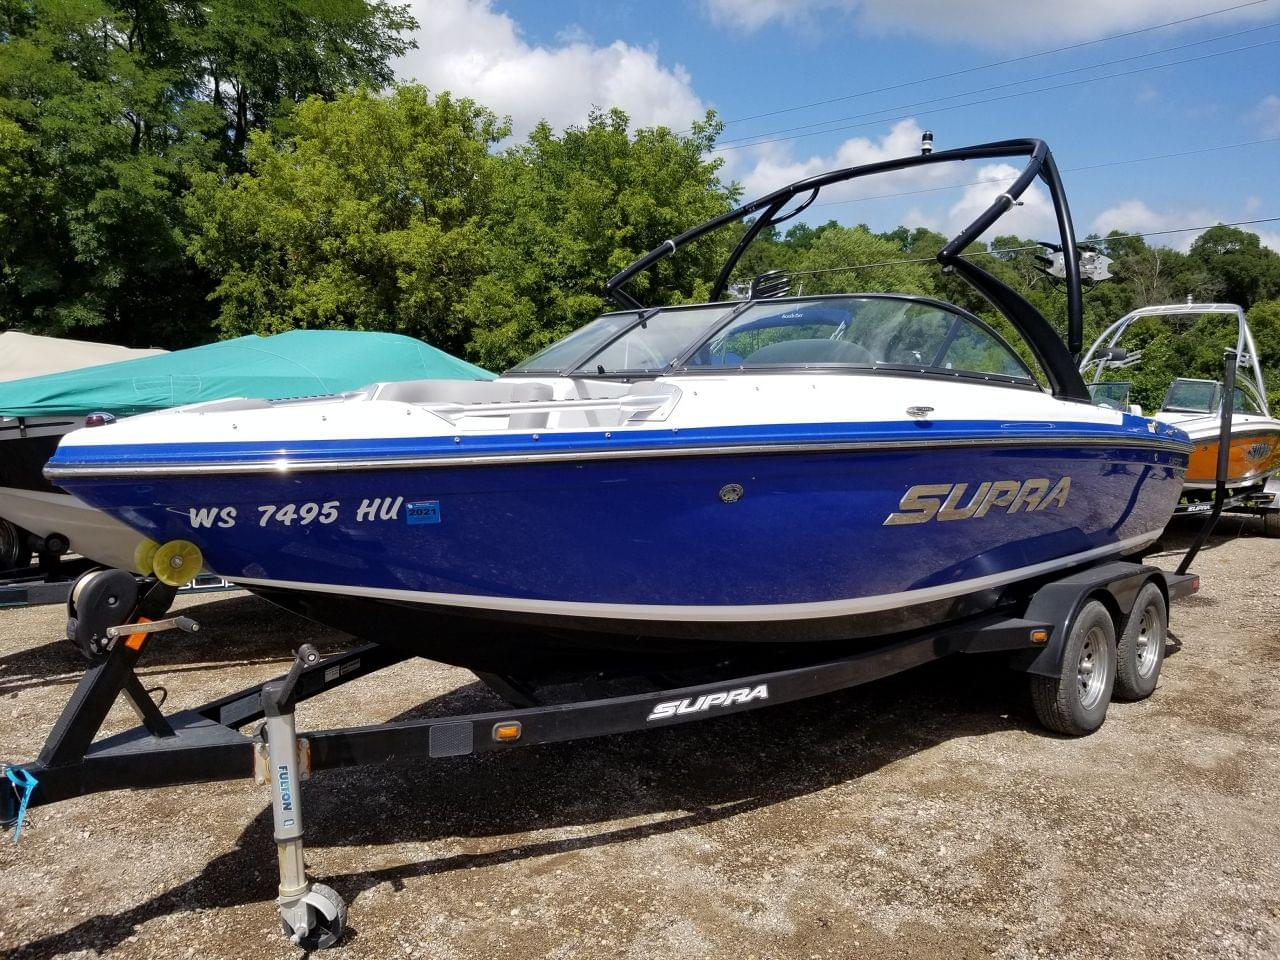 Used 2011 Supra Sunsport 21V, Stock #UBG1718 - The Boat House